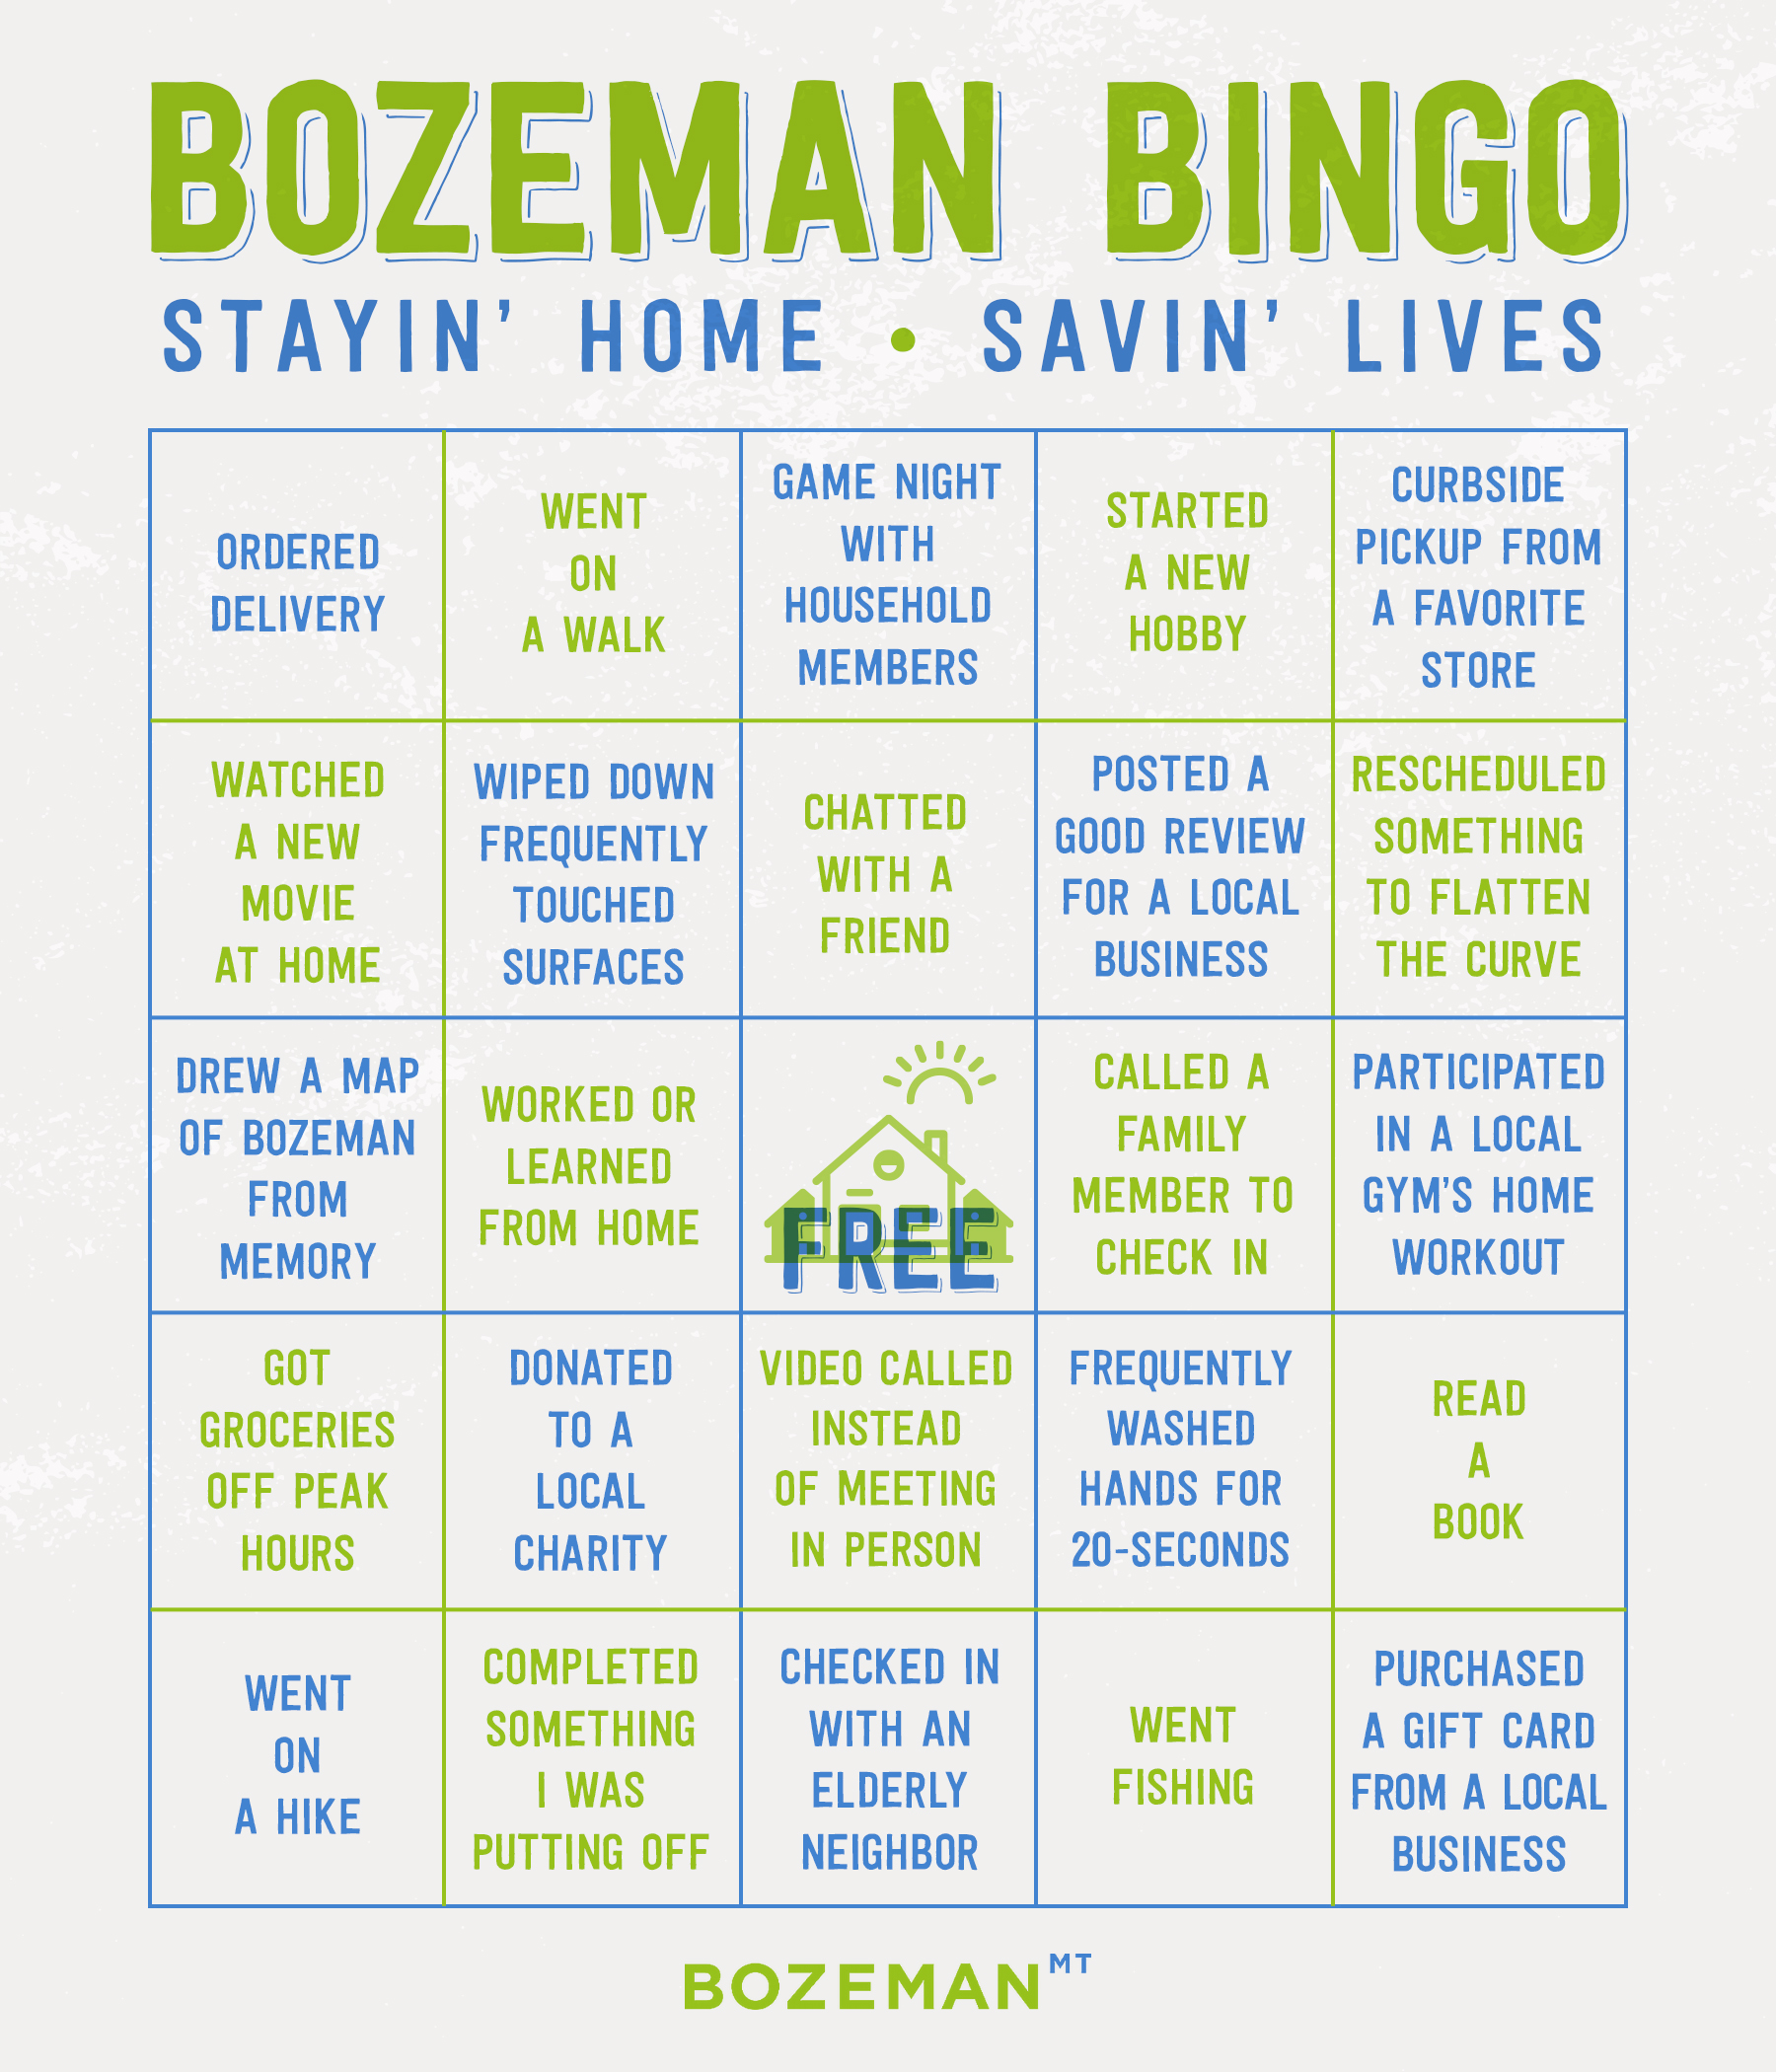 Bozeman bingo card with COVID and social distancing activities.